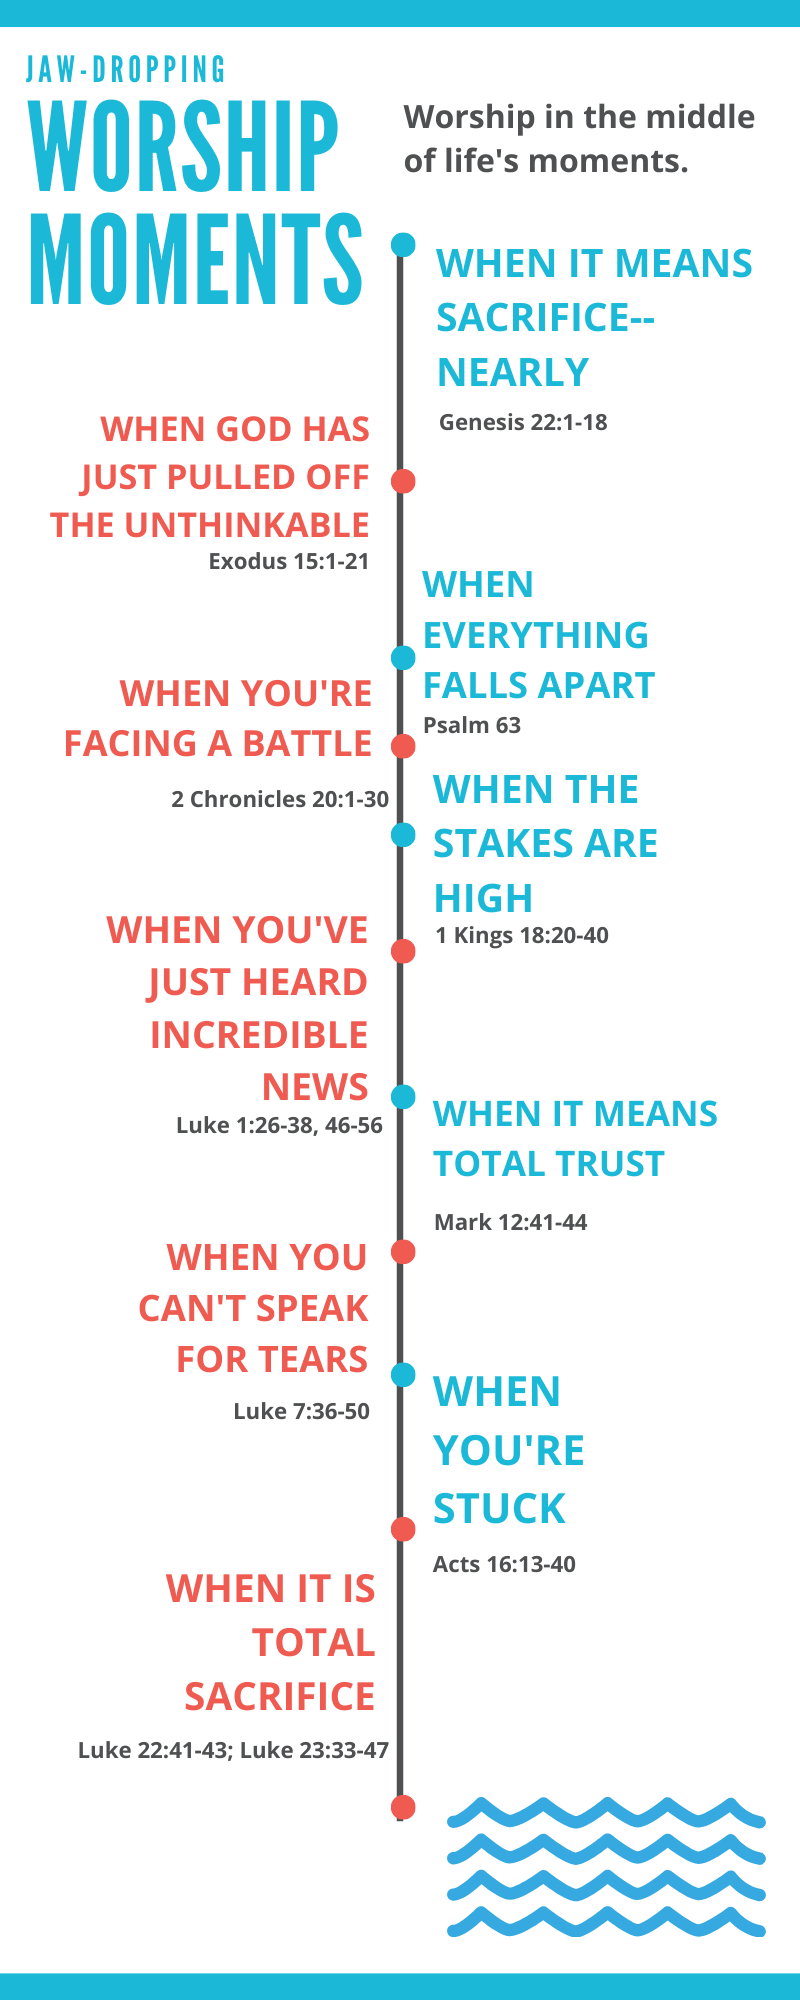 jaw dropping worship moments infographic